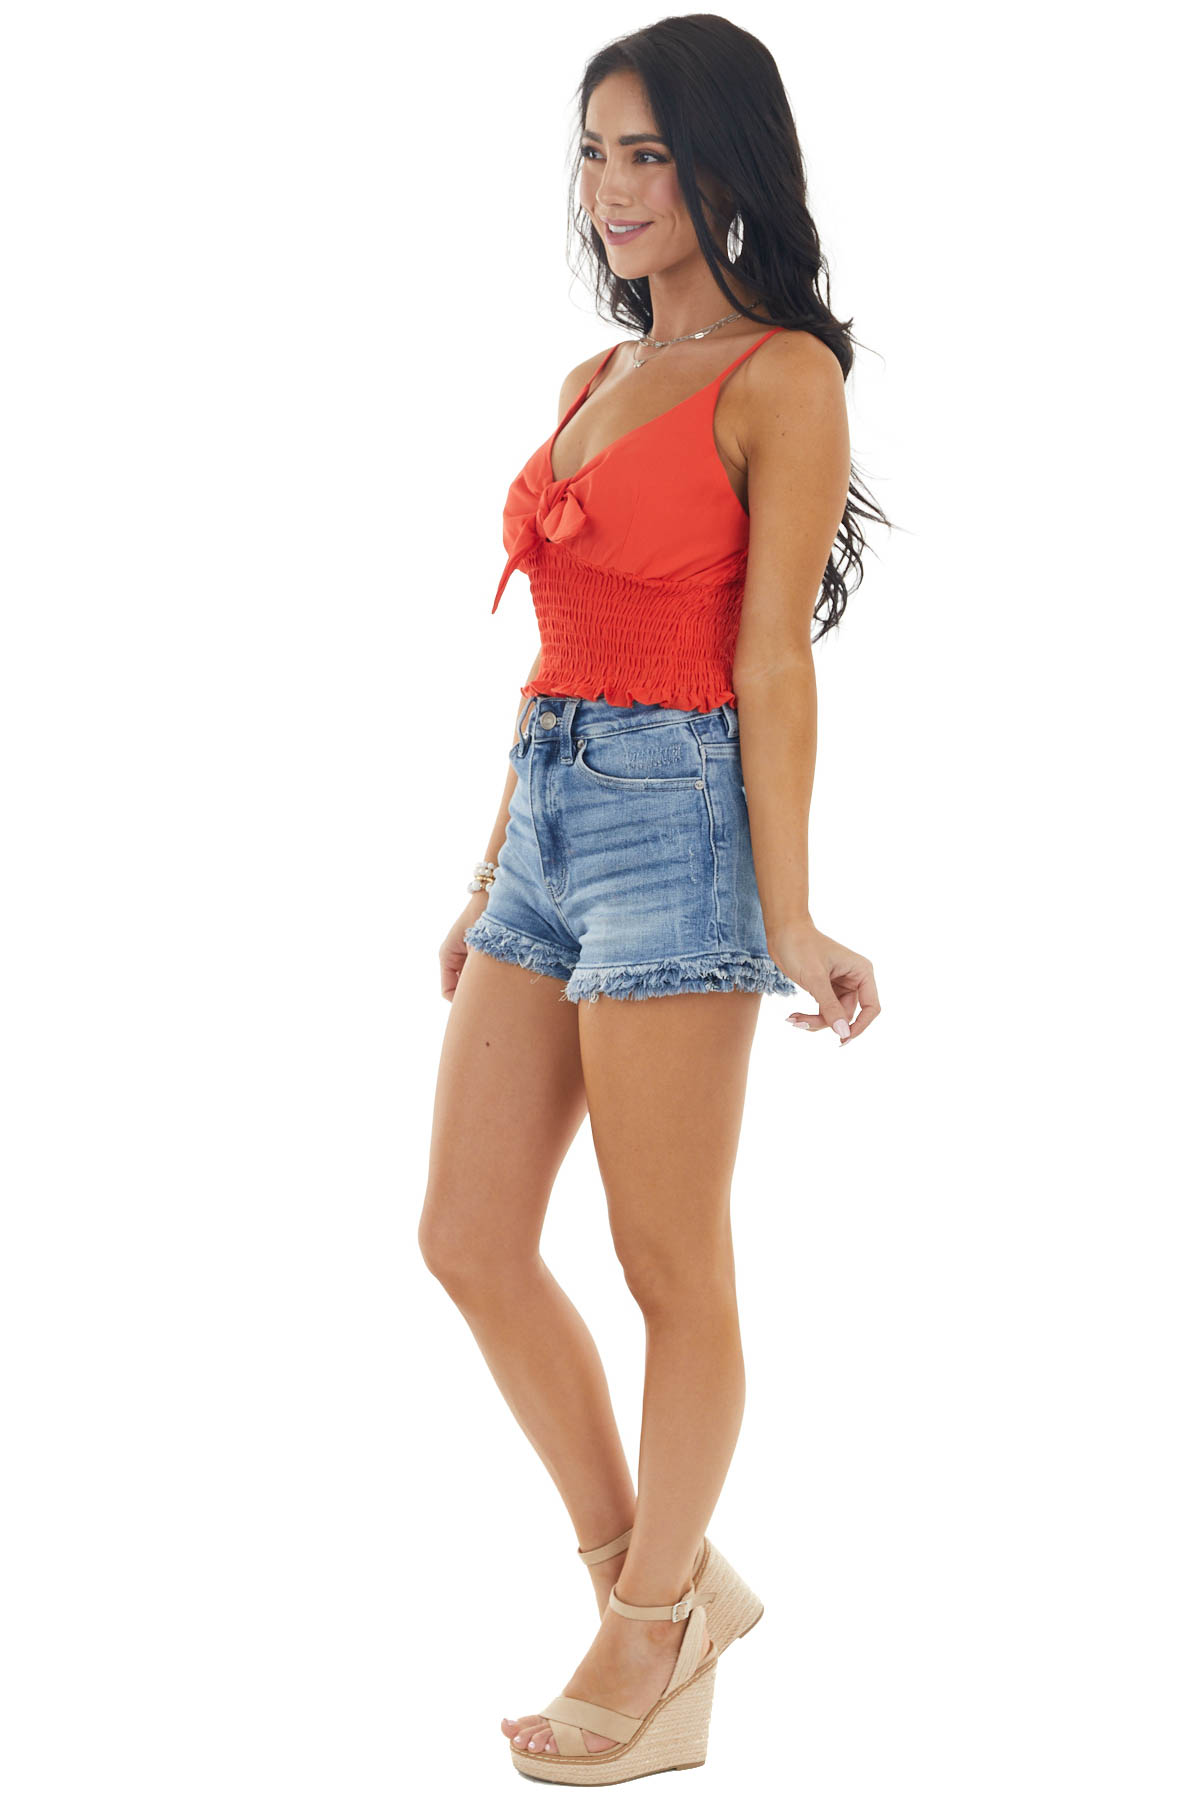 Tomato Red Spaghetti Strap Crop Top with Front Tie Detail